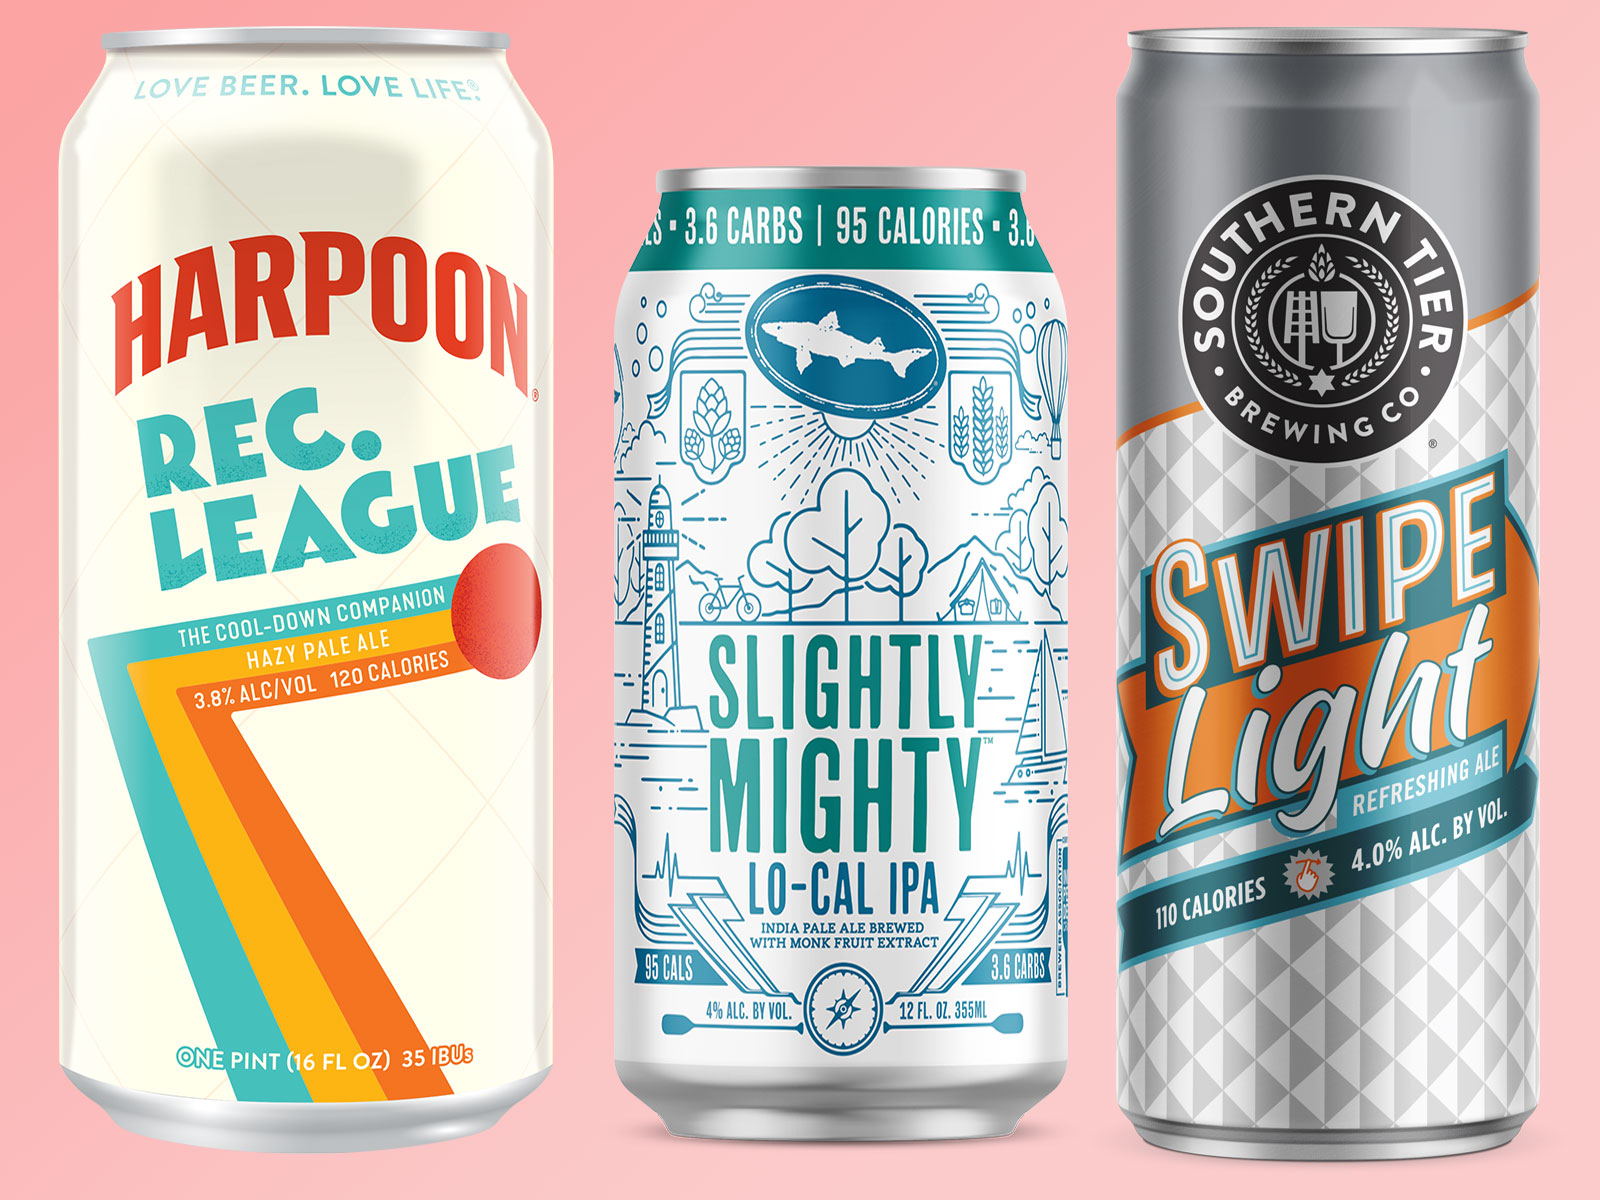 2019: The Summer Light Beer Got Good